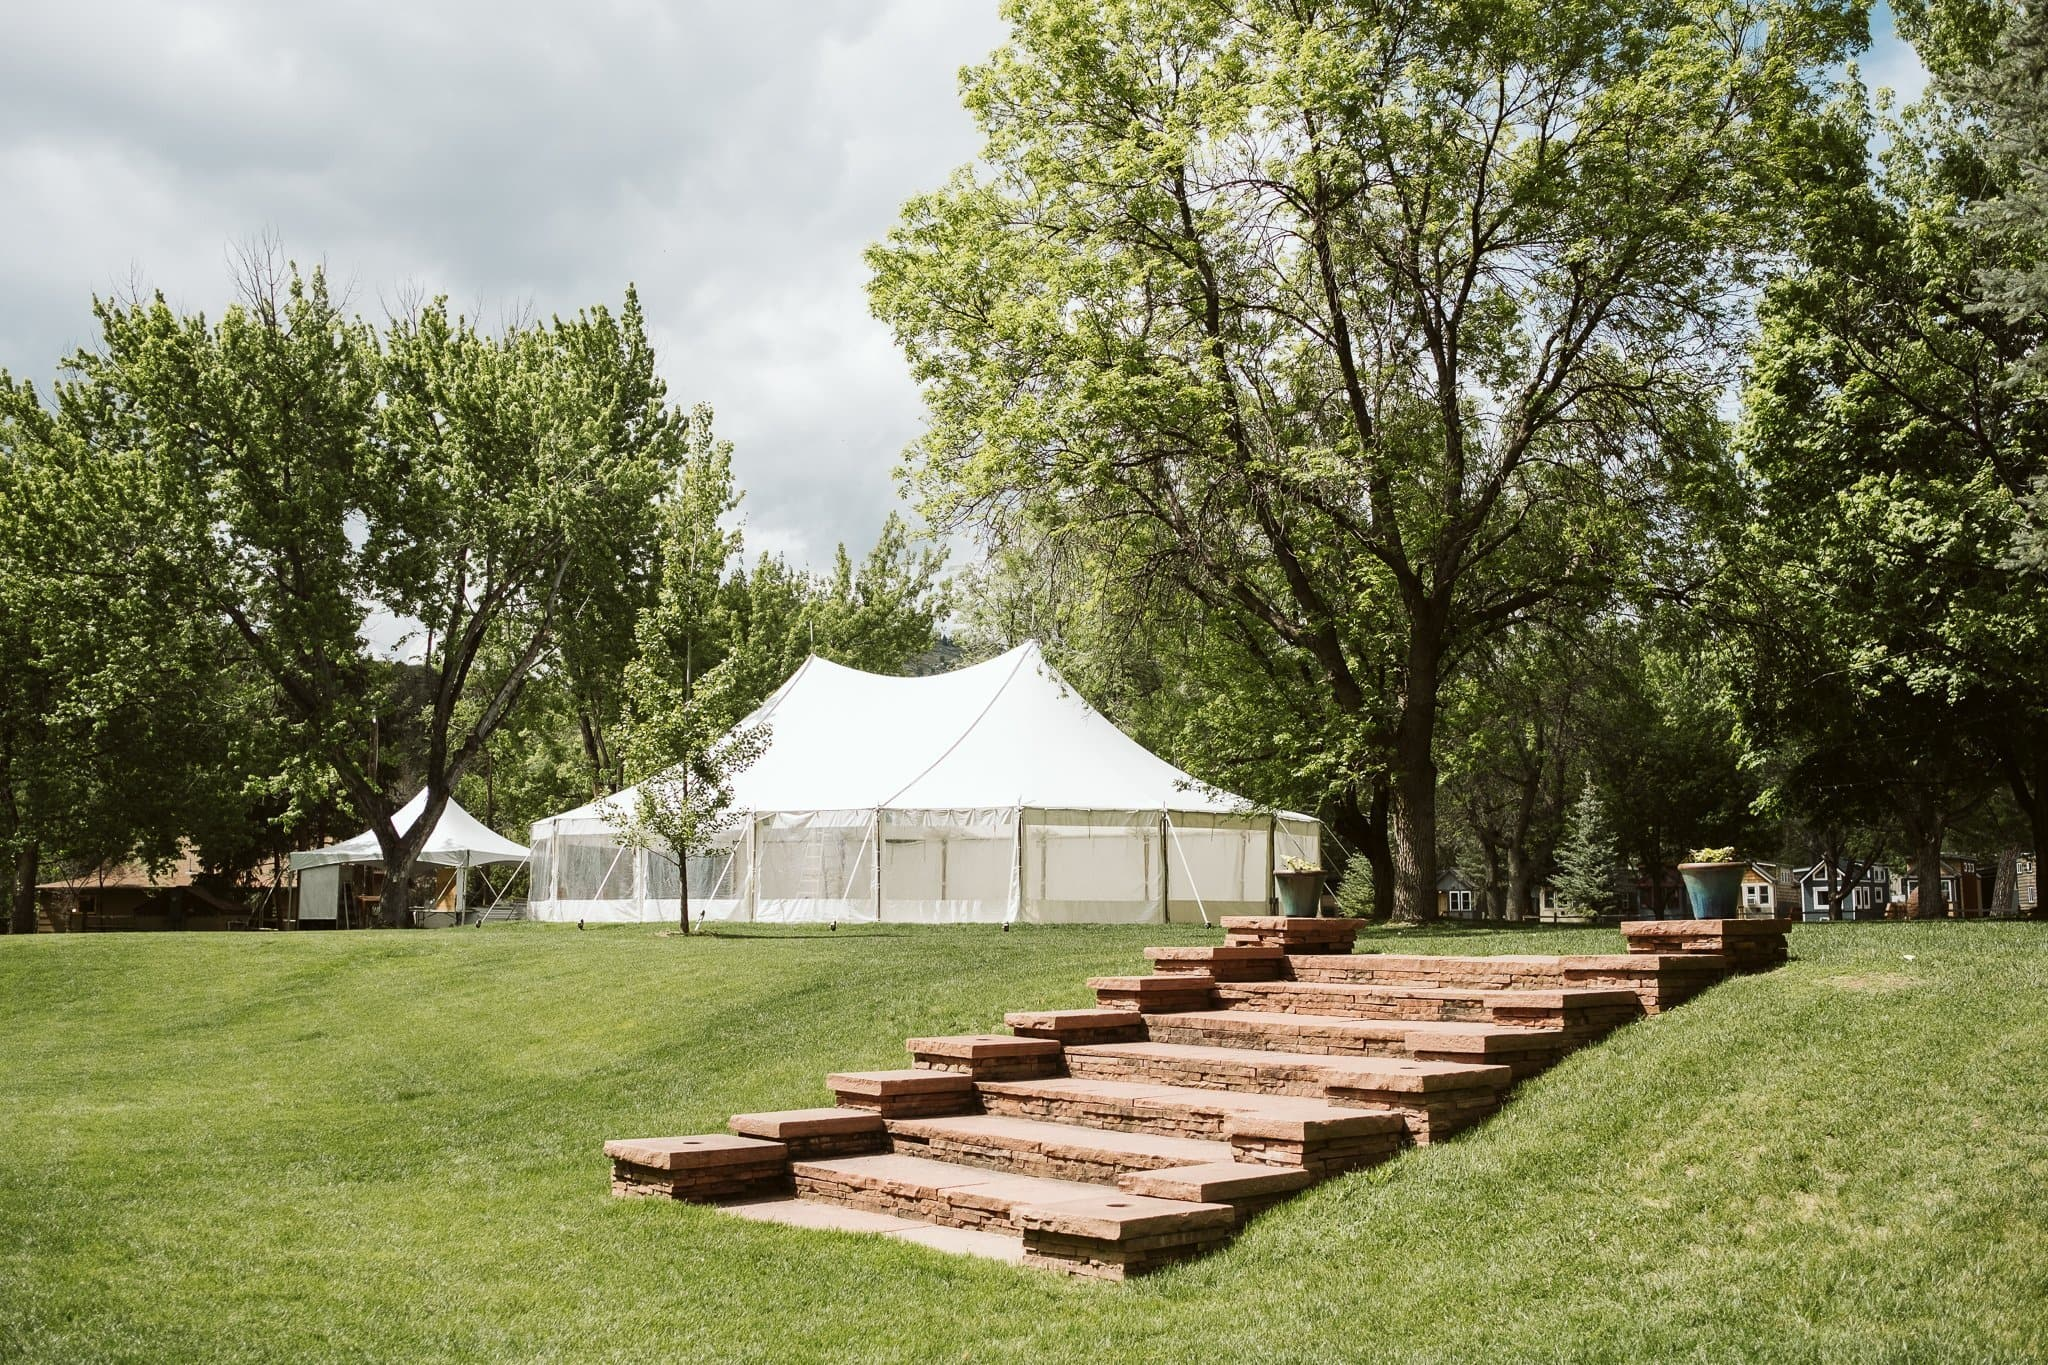 riverbend-wedding-venue-lyons-6